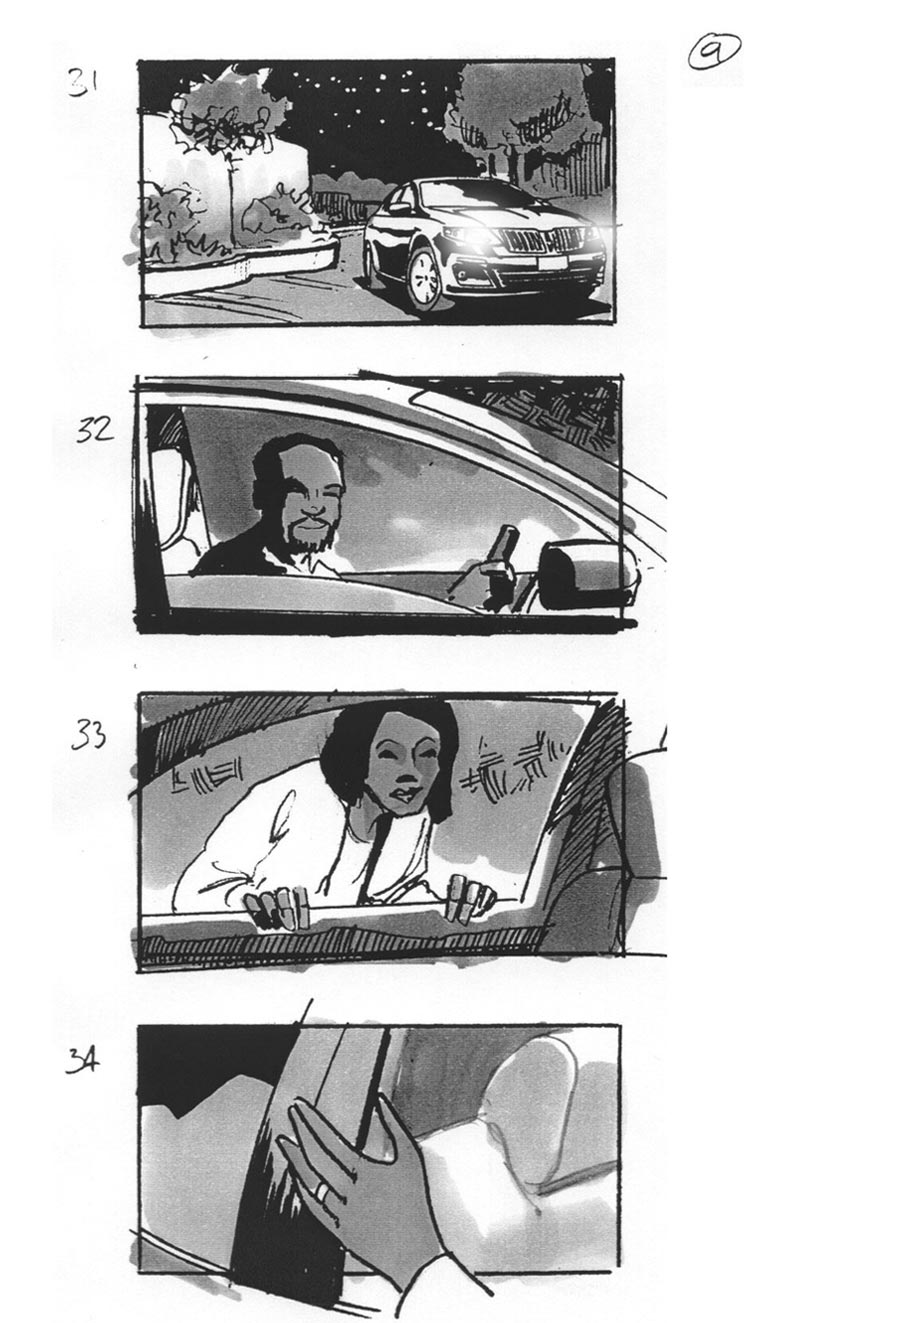 Lincoln Car Commercial By Storyboard Artist By Douglas Ingram